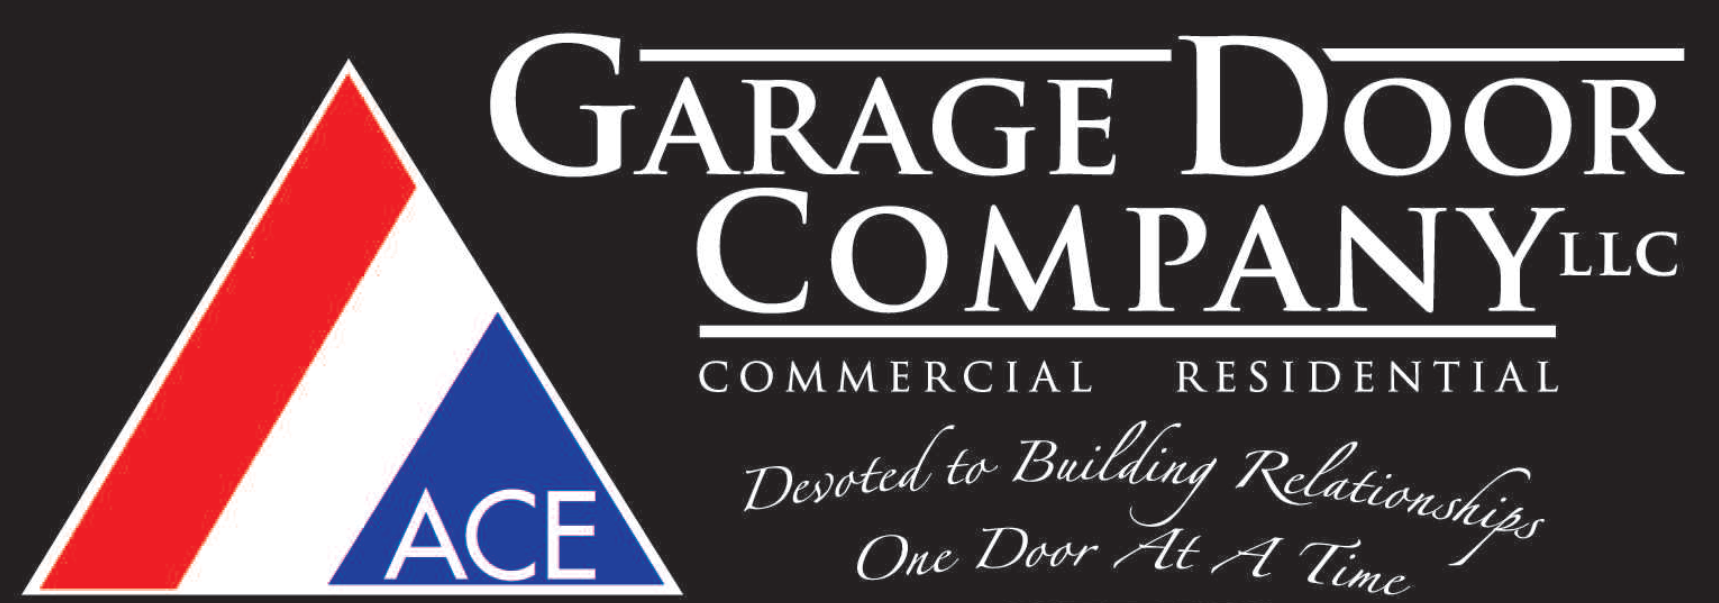 Ace Garage Door Company LLC - Logo